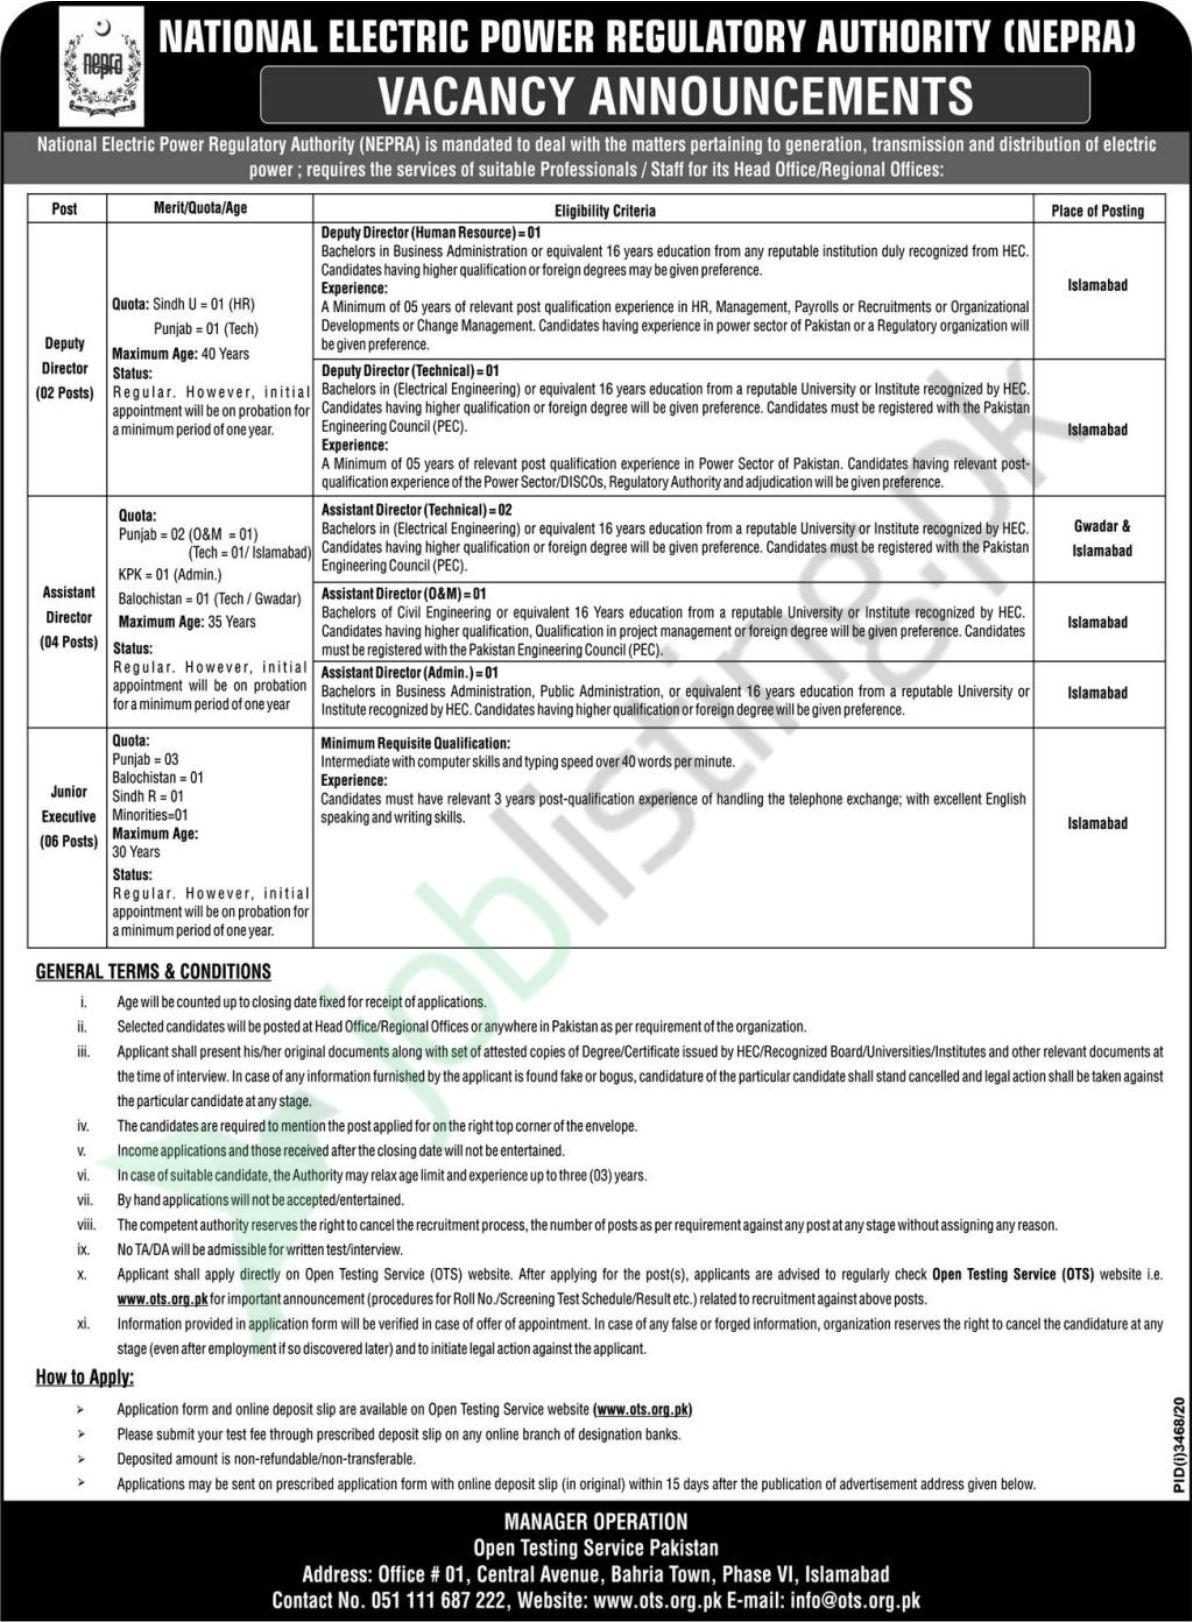 NEPRA Jobs 2021 OTS Application Form, www.ots.org.pk